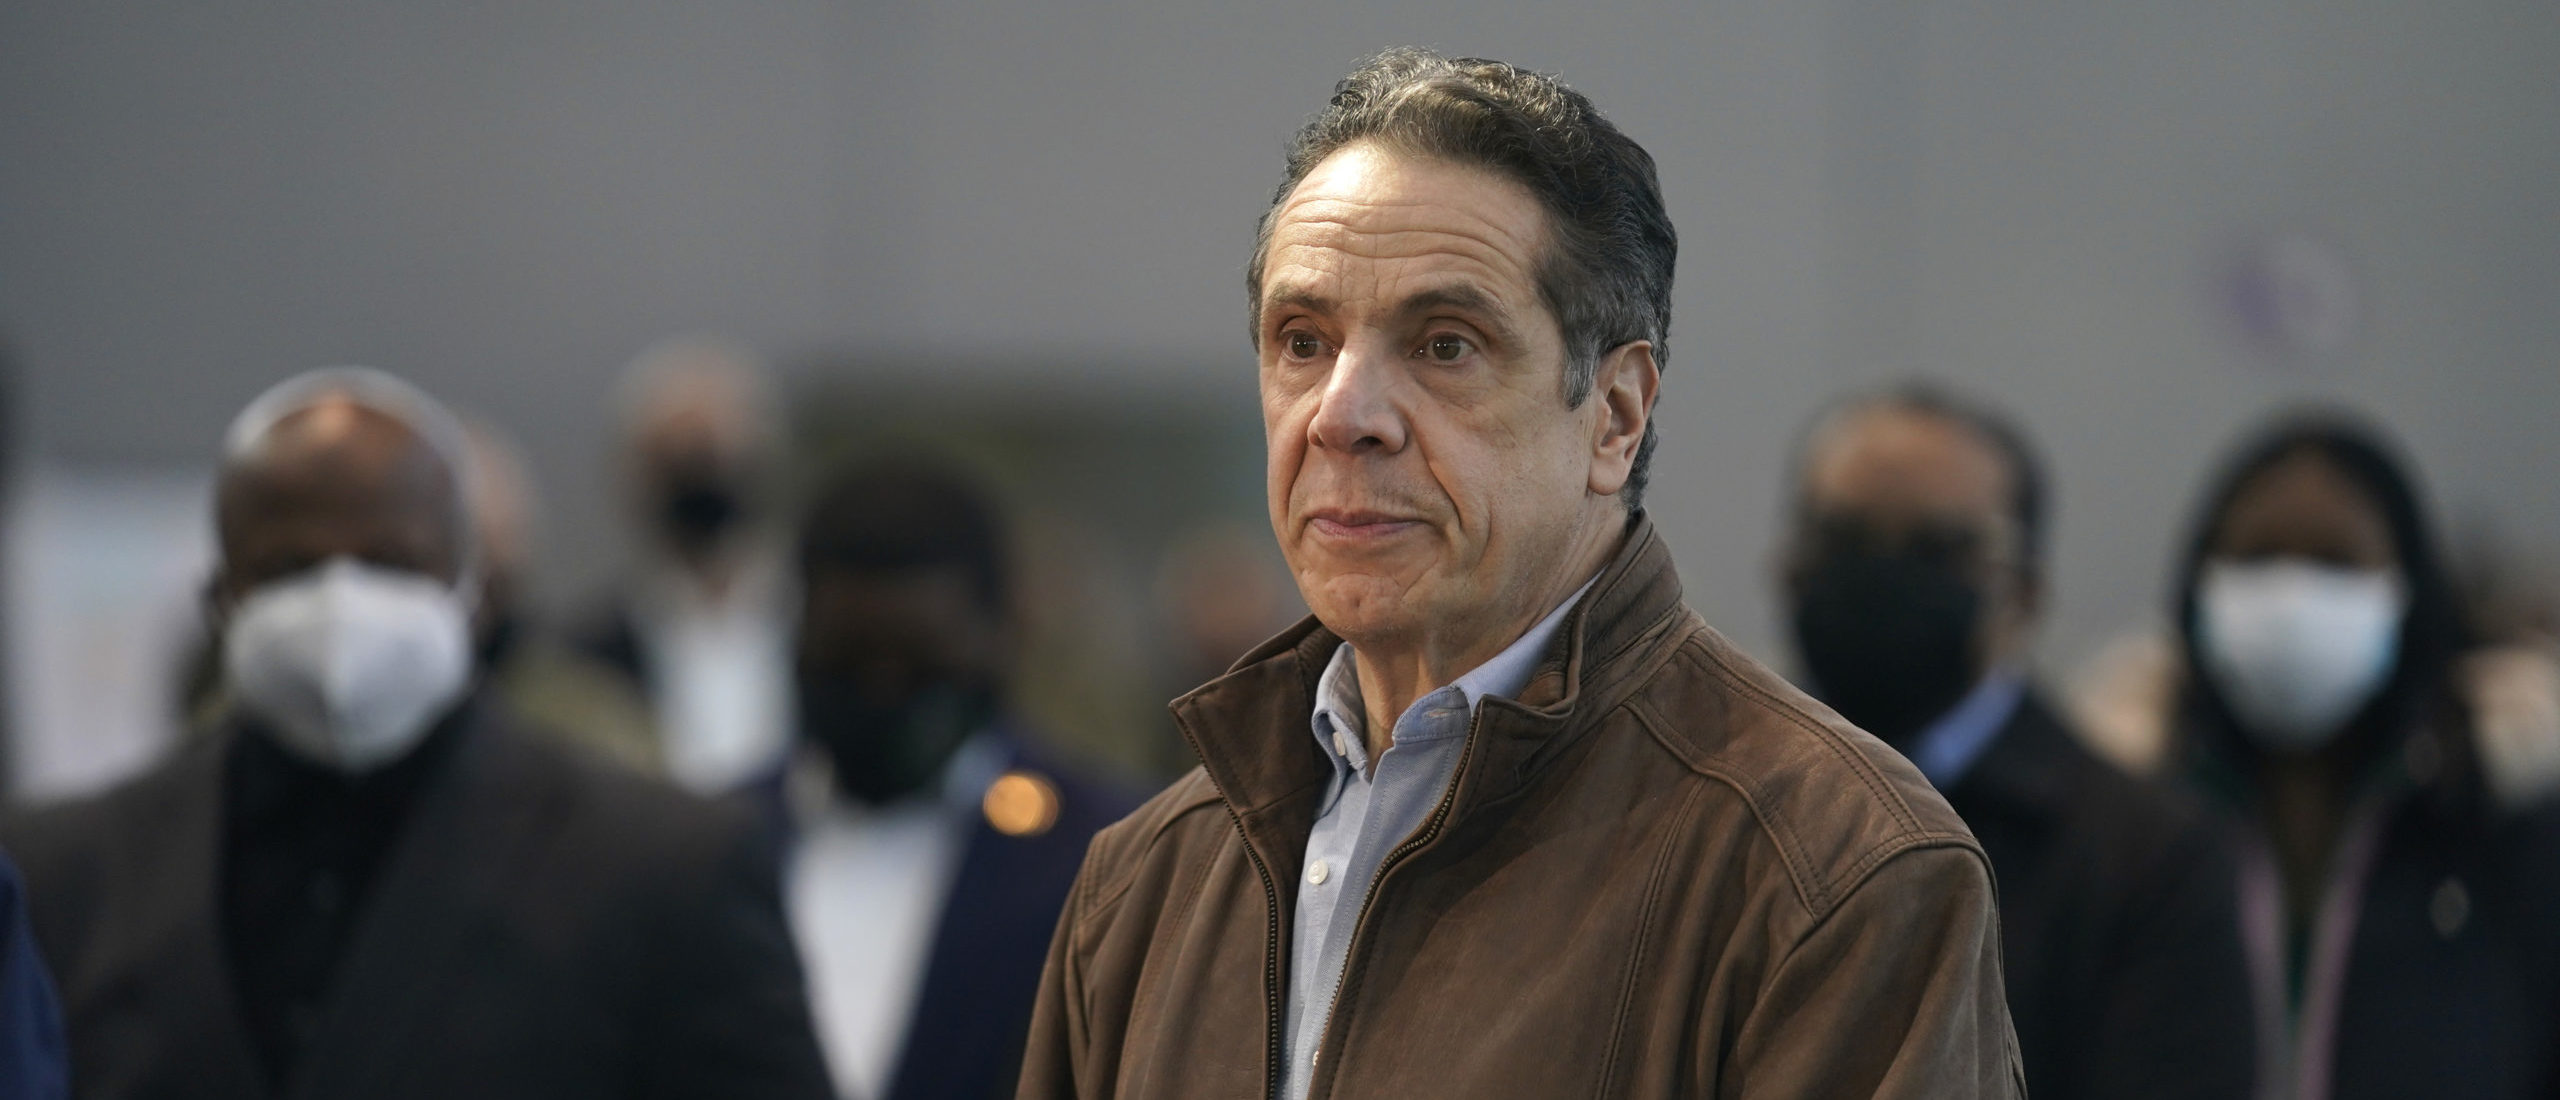 New York Gov. Andrew Cuomo speaks at a vaccination site at the Jacob K. Javits Convention Center on March 8, 2021, in New York City. (Seth Wenig-Pool/Getty Images)